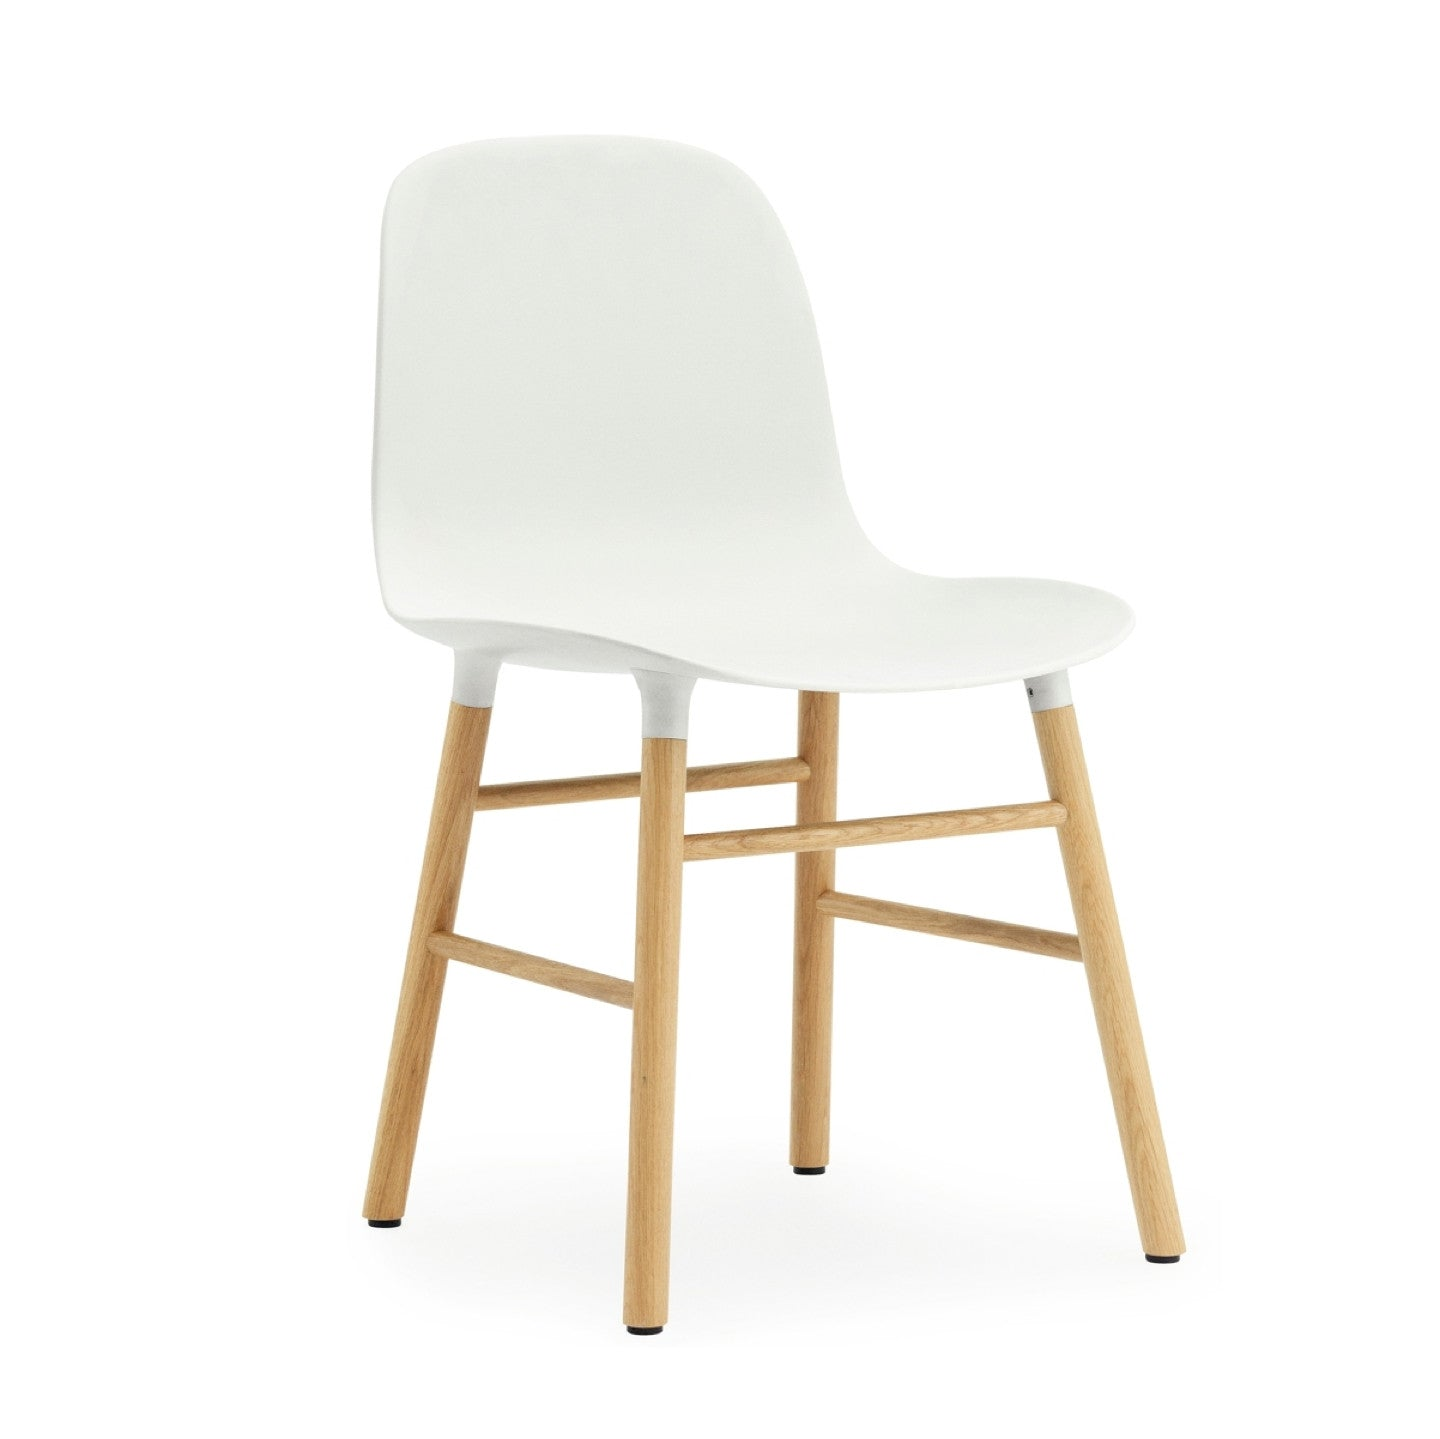 Form Chair with Wooden Base by Normann Copenhagen - haus®